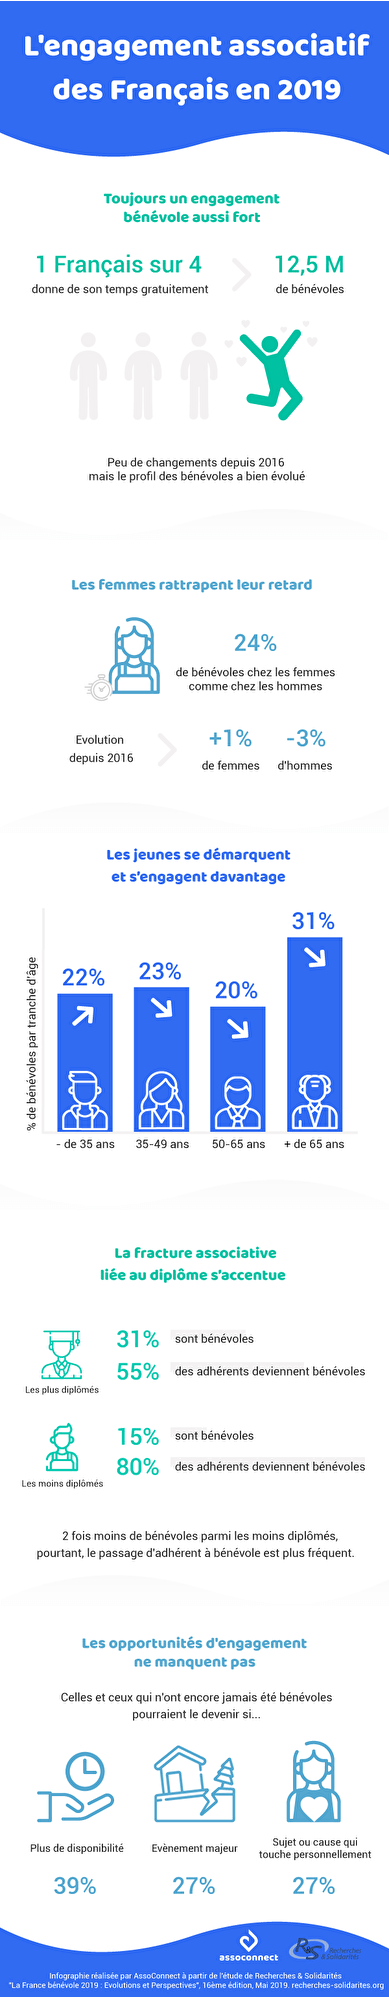 infographie benevolat france association assoconnect